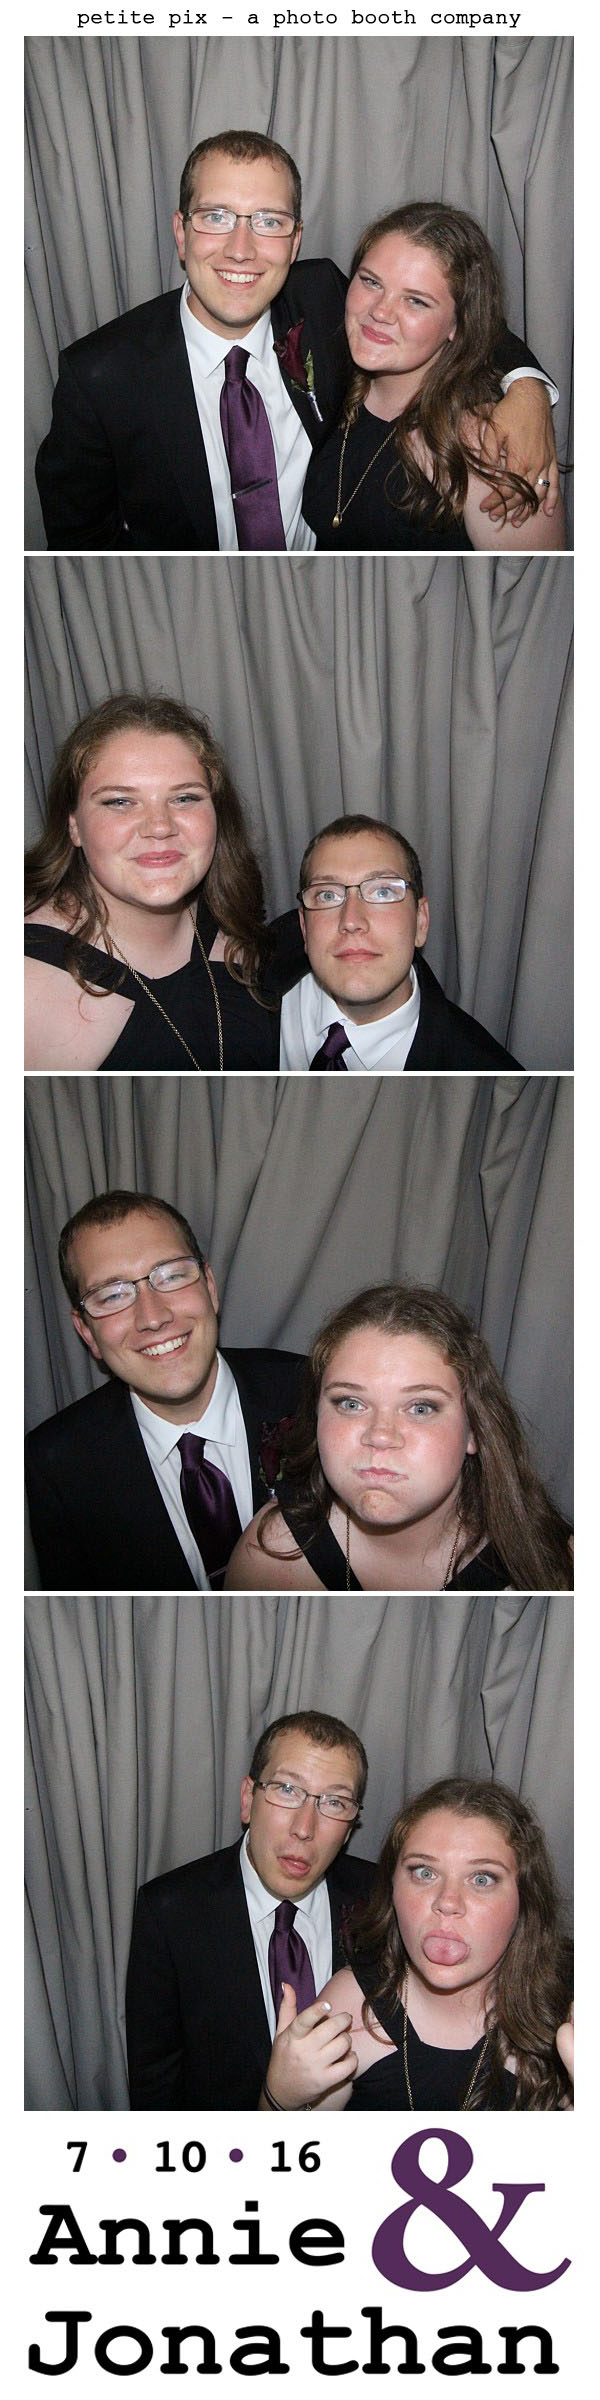 Petite Pix Classic Photo Booth at the Cicada Club in Downtown Los Angeles for Annie and Jonathan's Wedding 69